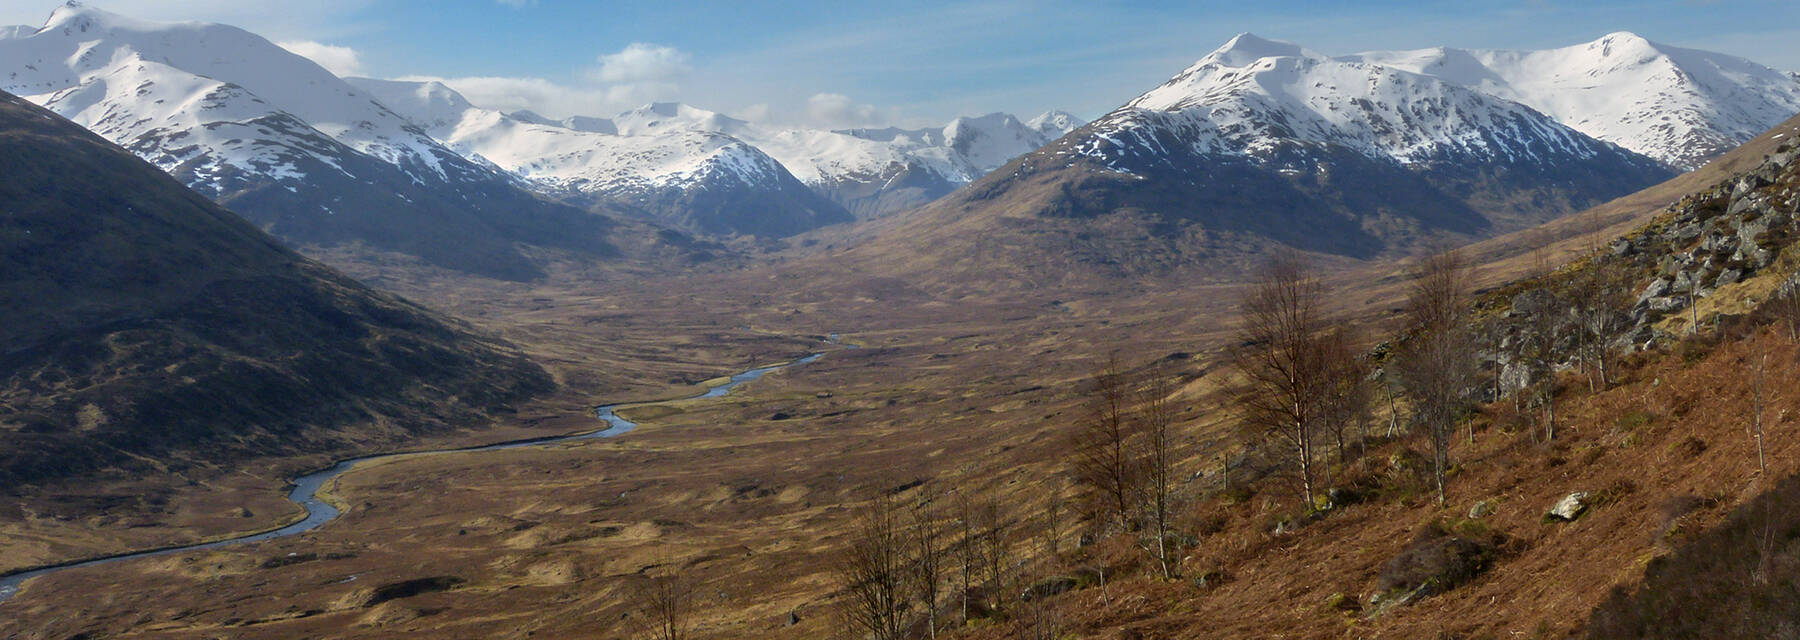 In the background are the West Affric snow-capped mountains. In the foreground is a hillside, with occasional bare trees. A river snakes through the glen to the left of the image.